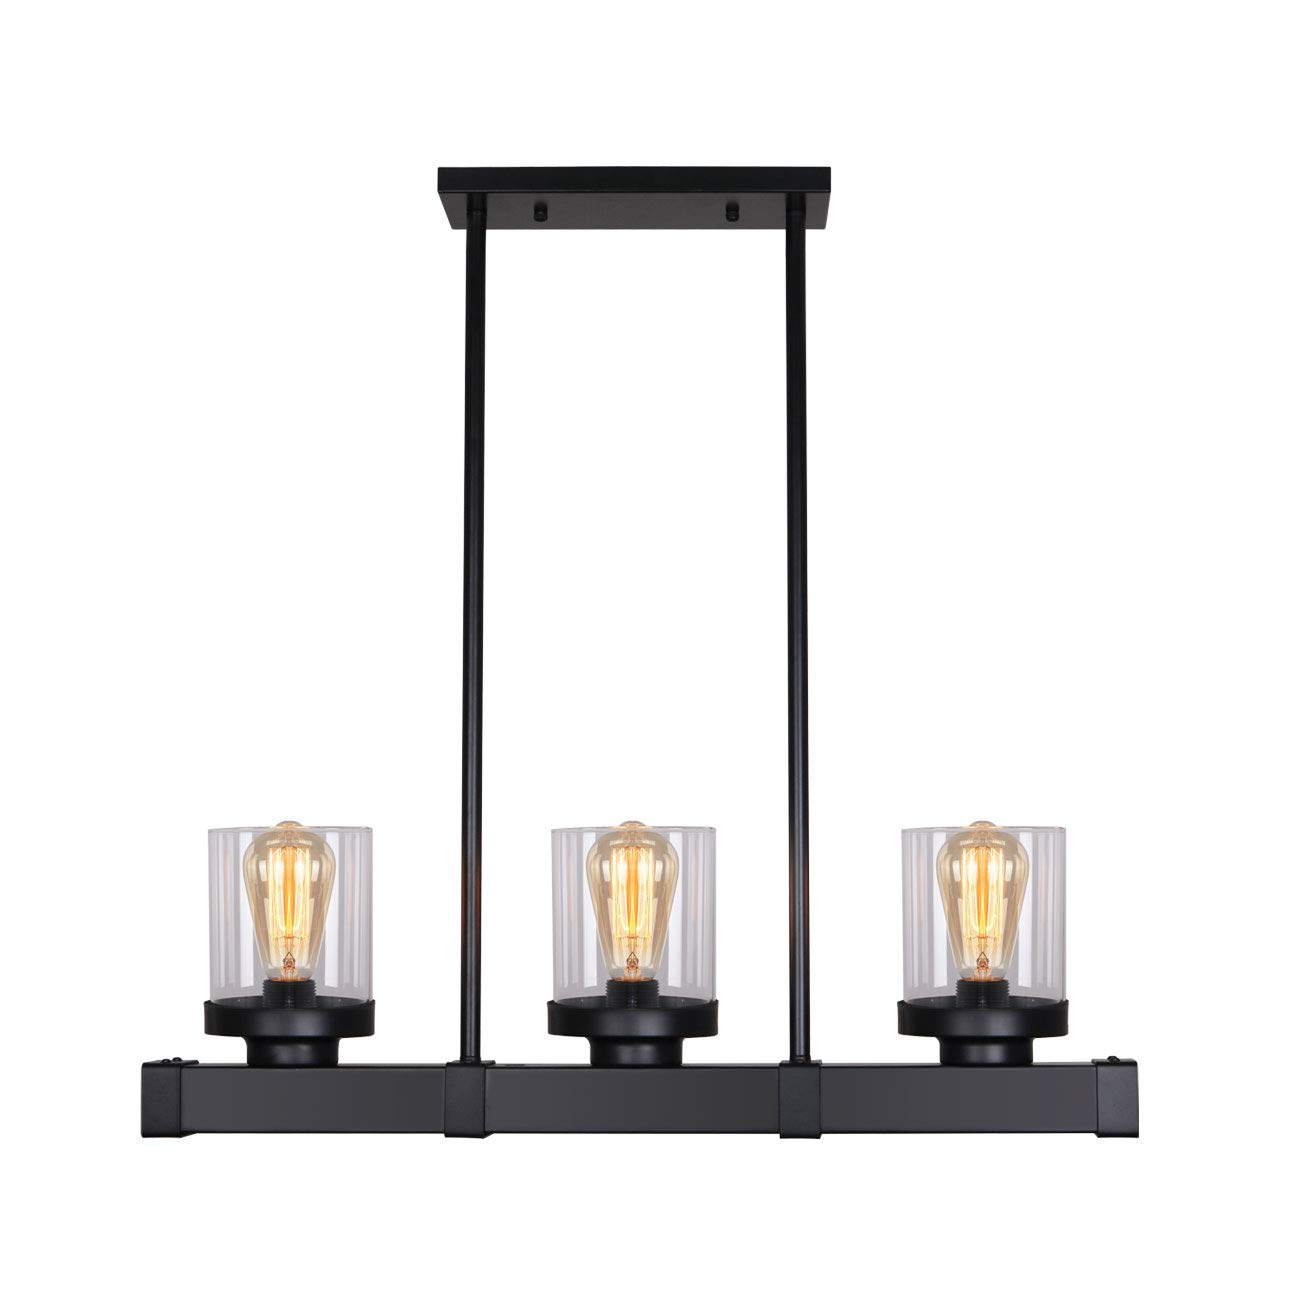 Unitary Brand Antique Black Metal Glass Shade Kitchen Island Light Fixture with 3 E26 Bulb Sockets 120W Painted Finish